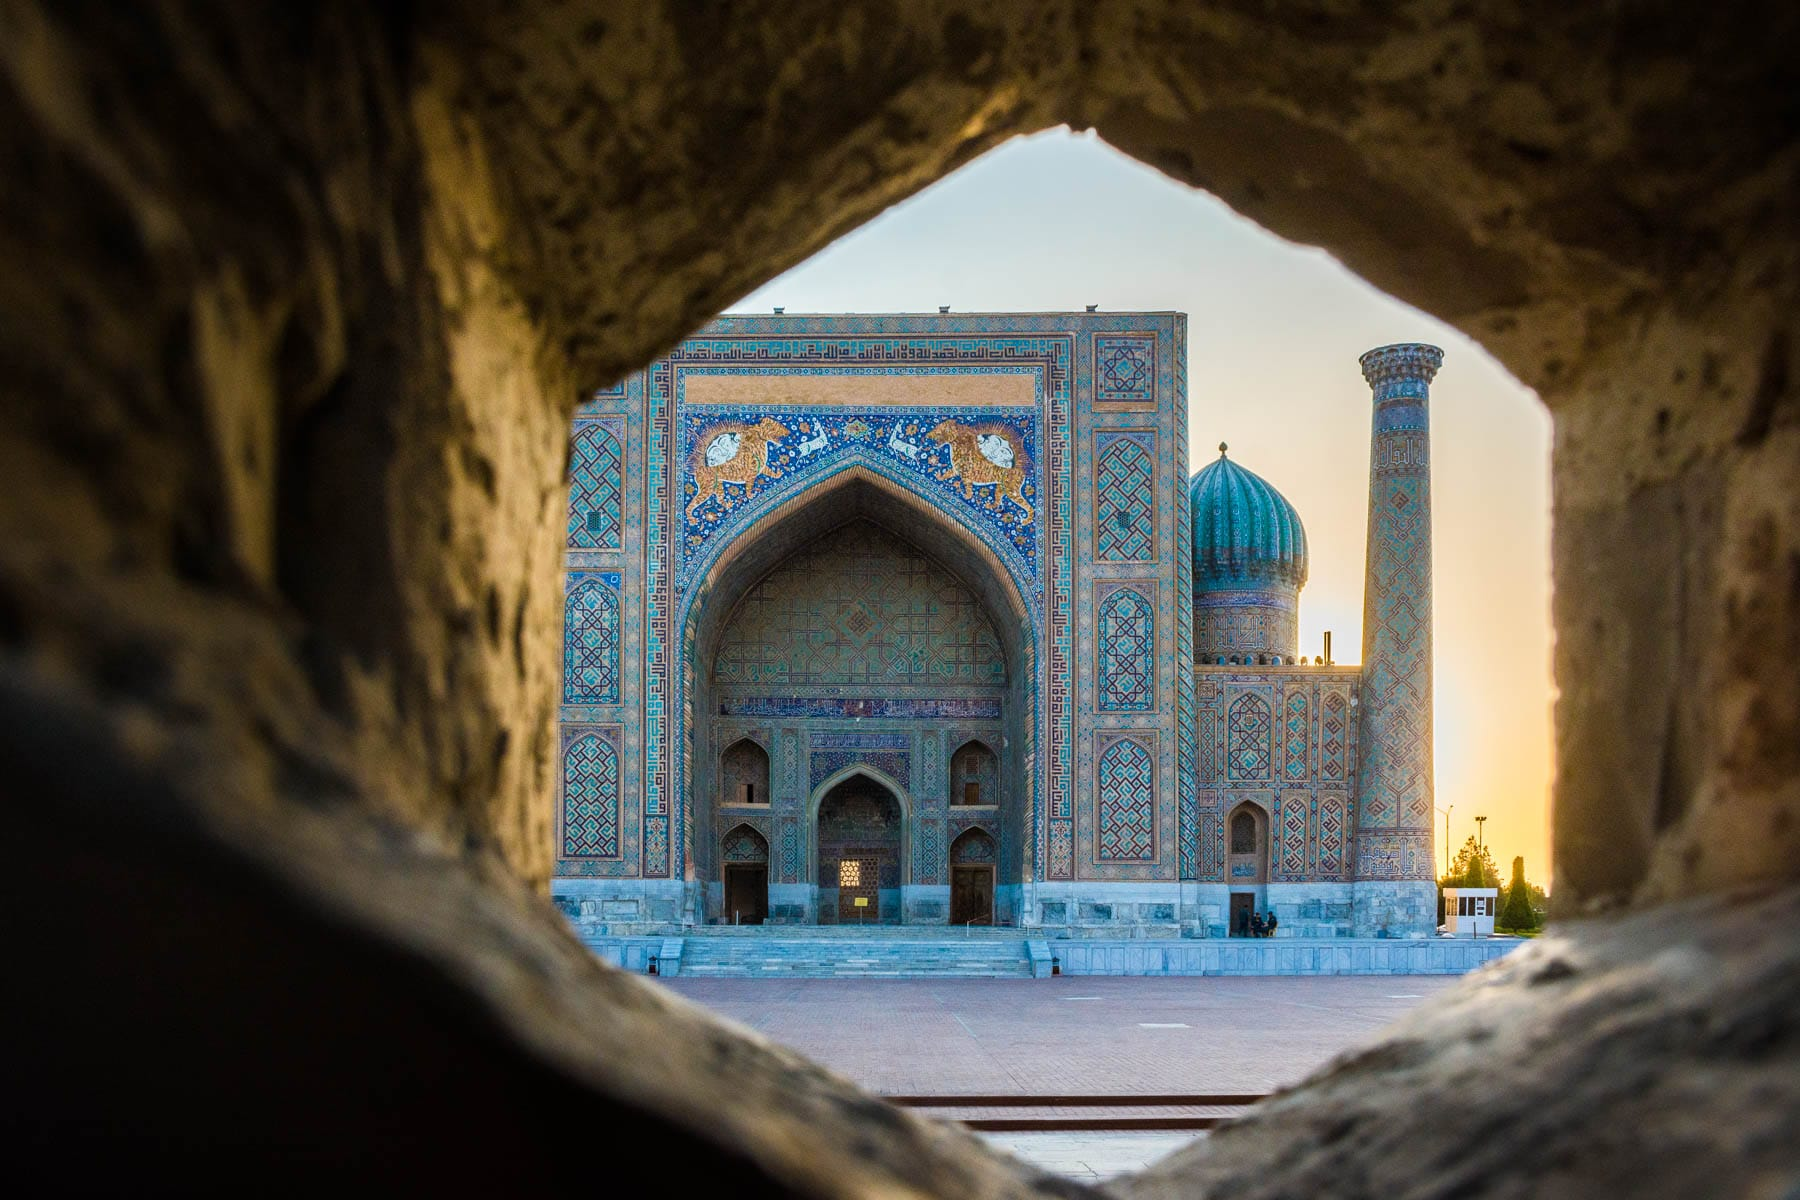 How much did one year of travel in Asia cost? - Sunrise at the Registan in Samarkand, Uzbekistan - Lost With Purpose